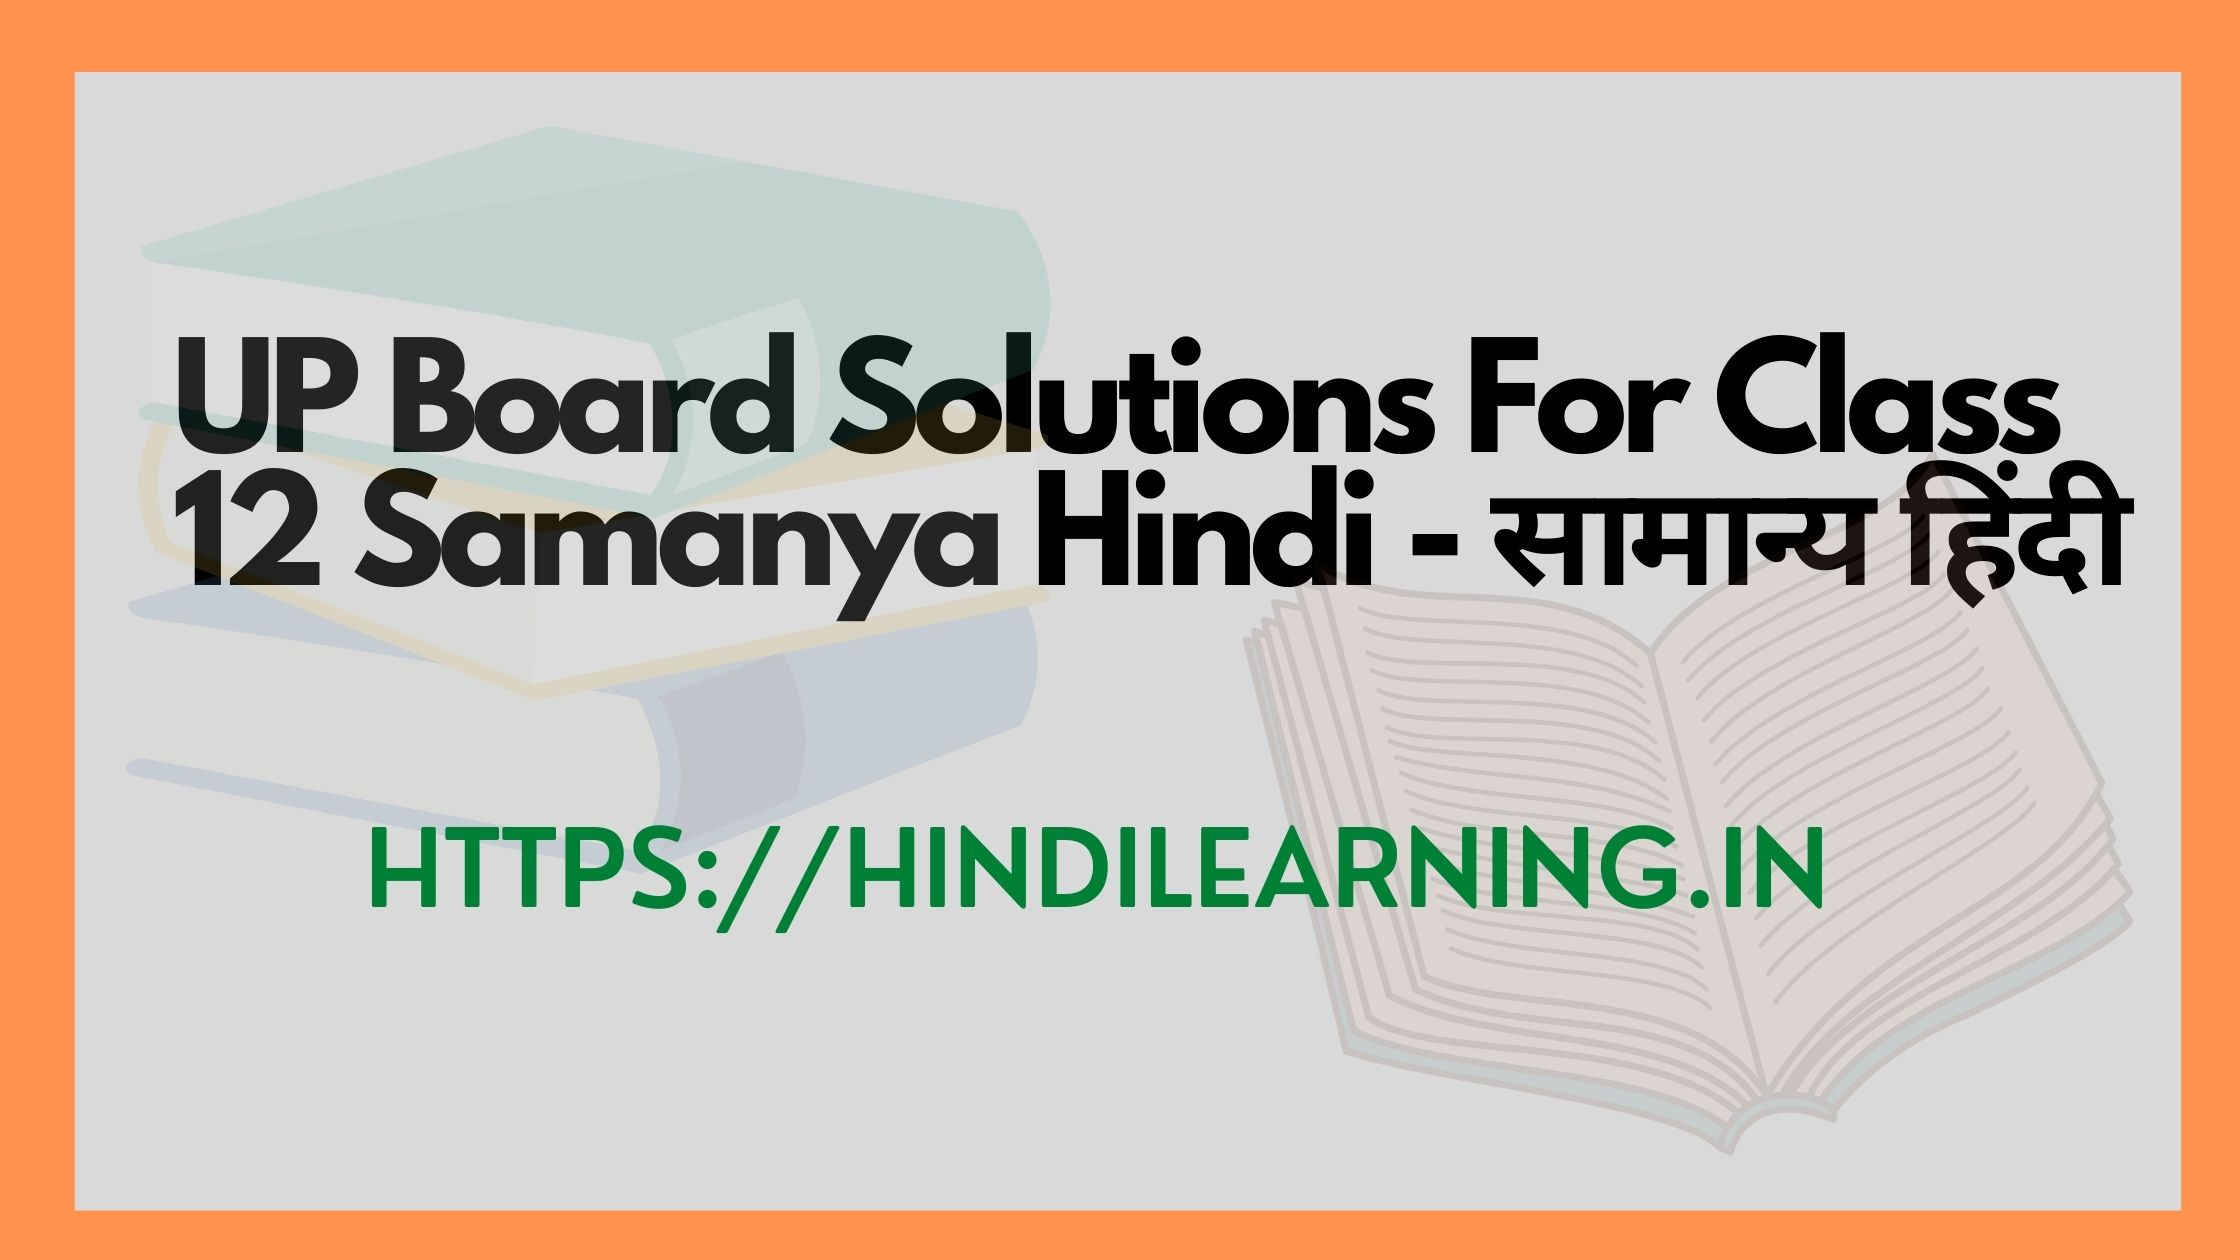 UP Board Solutions For Class 12 Samanya Hindi सामान्य हिंदी